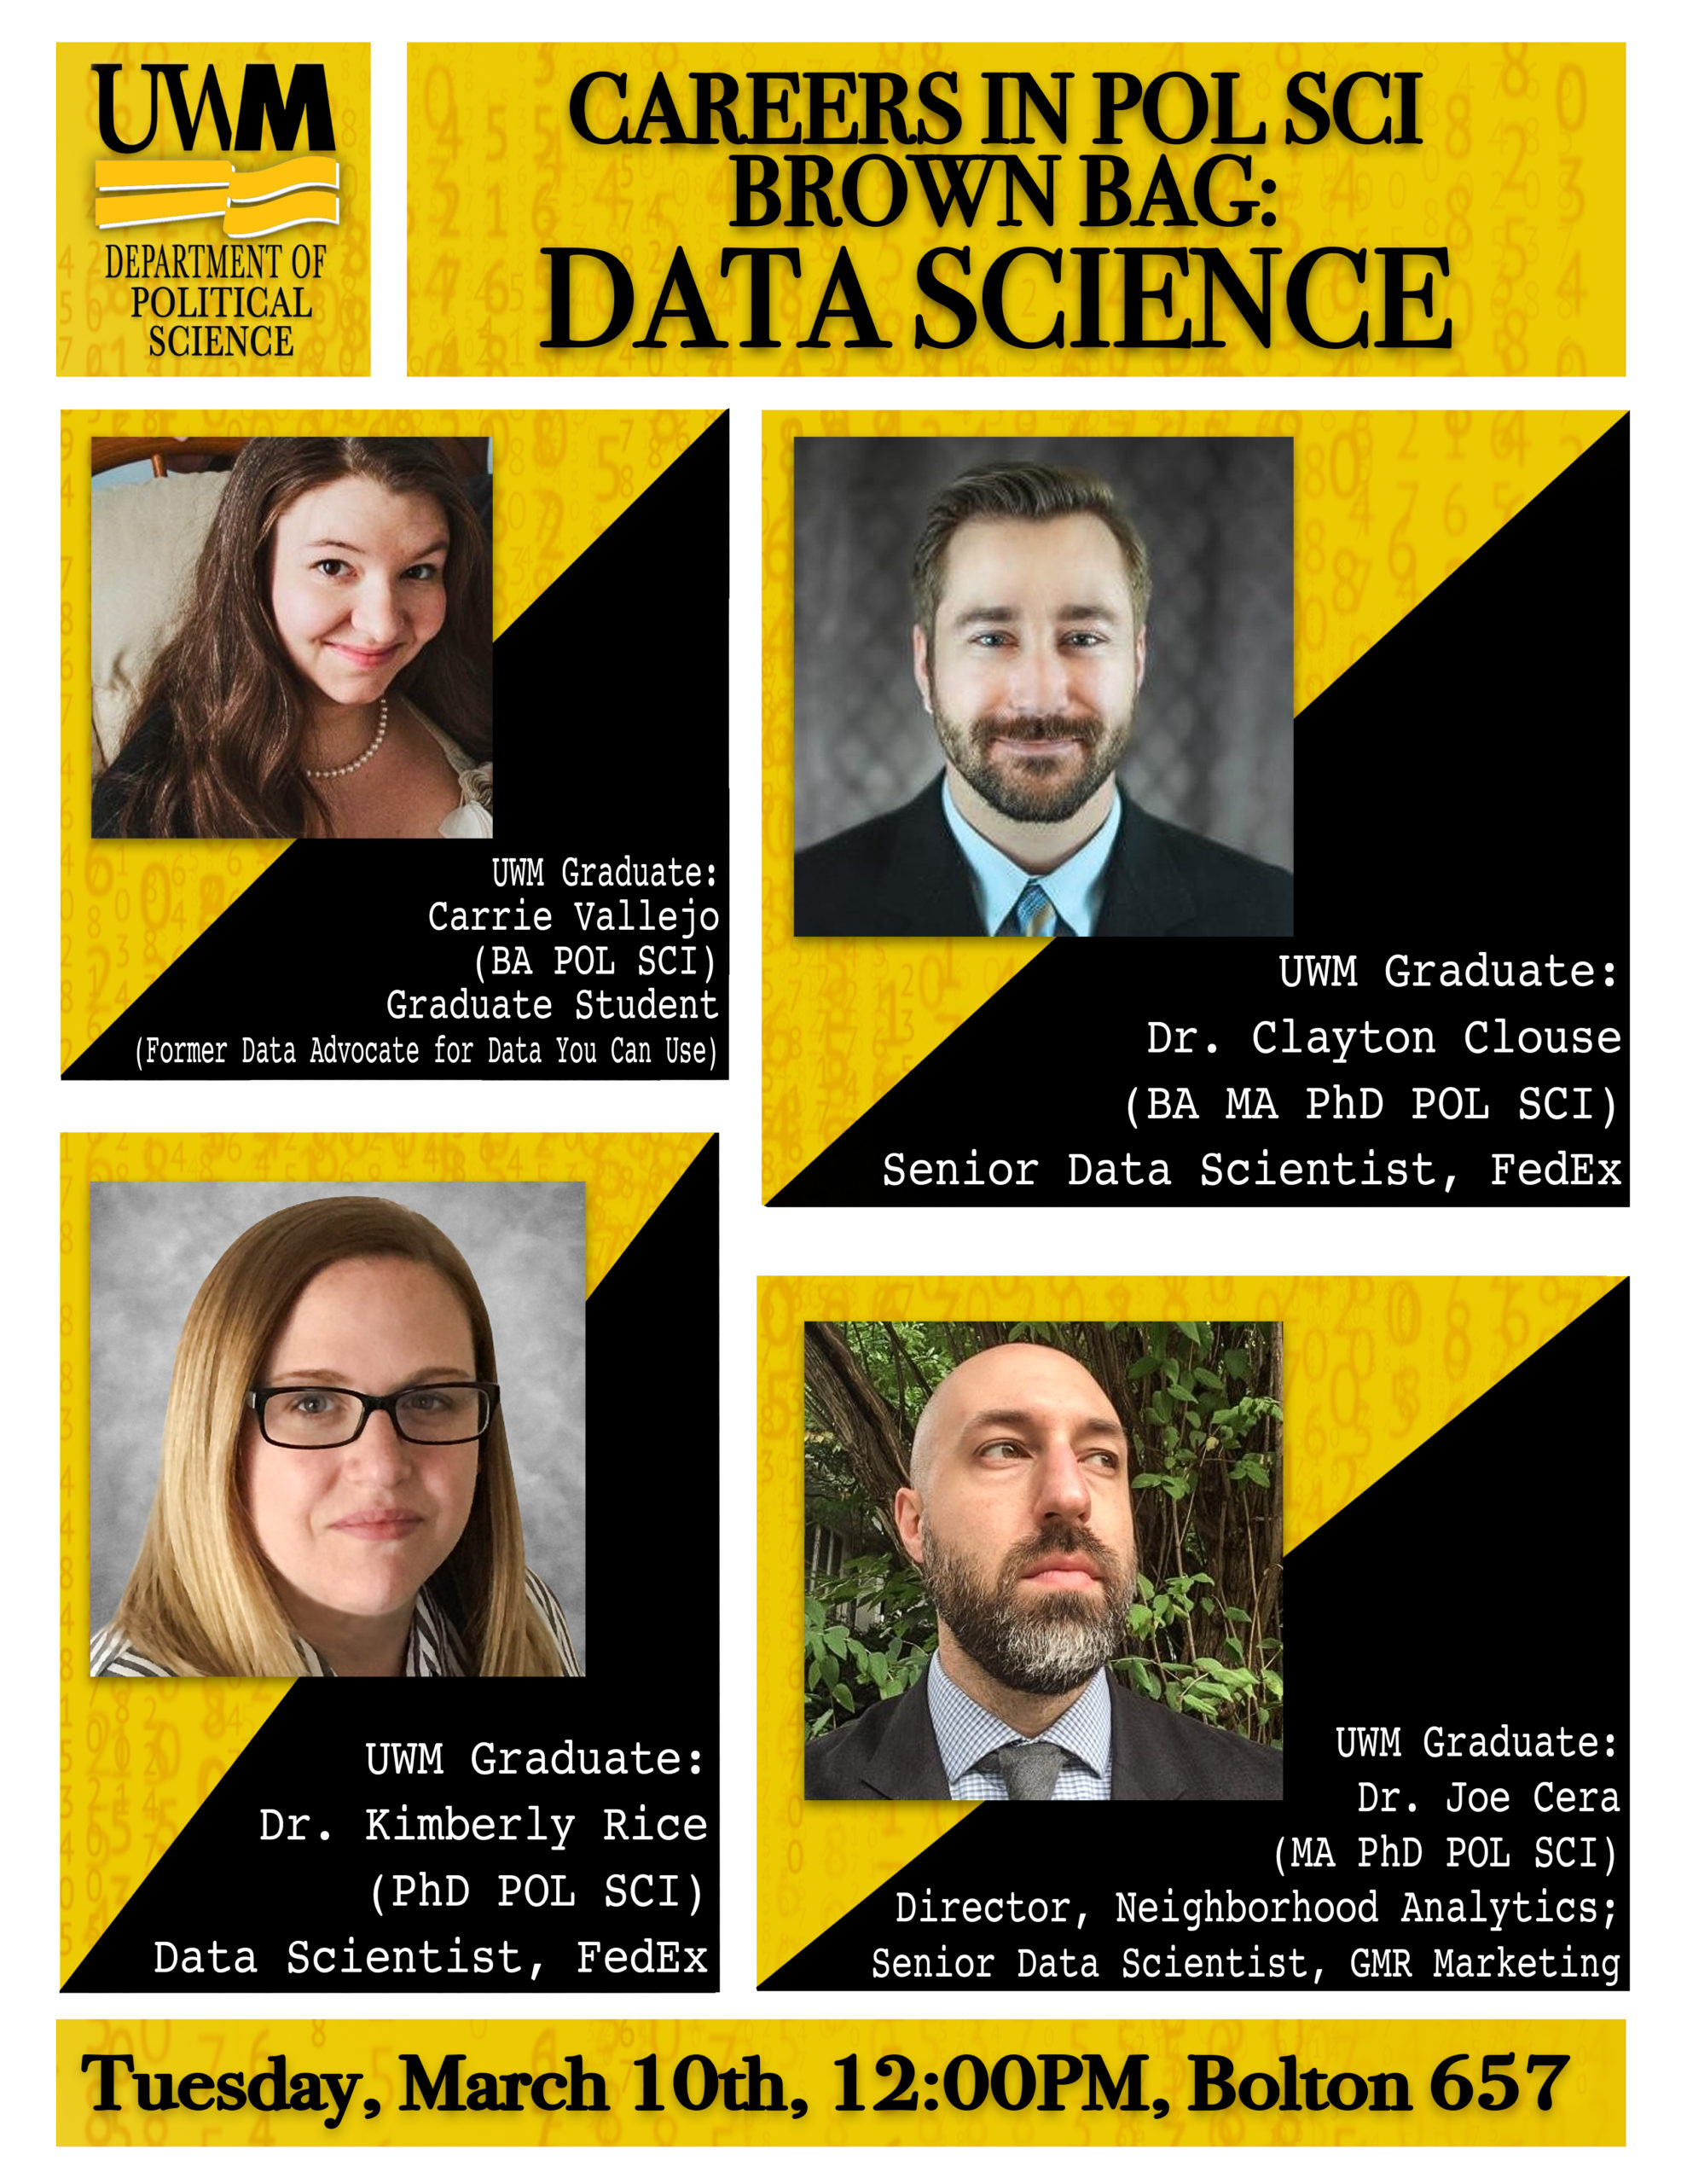 Careers in POL SCI Brown Bag: Data Science flyer with four alumni photos who work in the field.